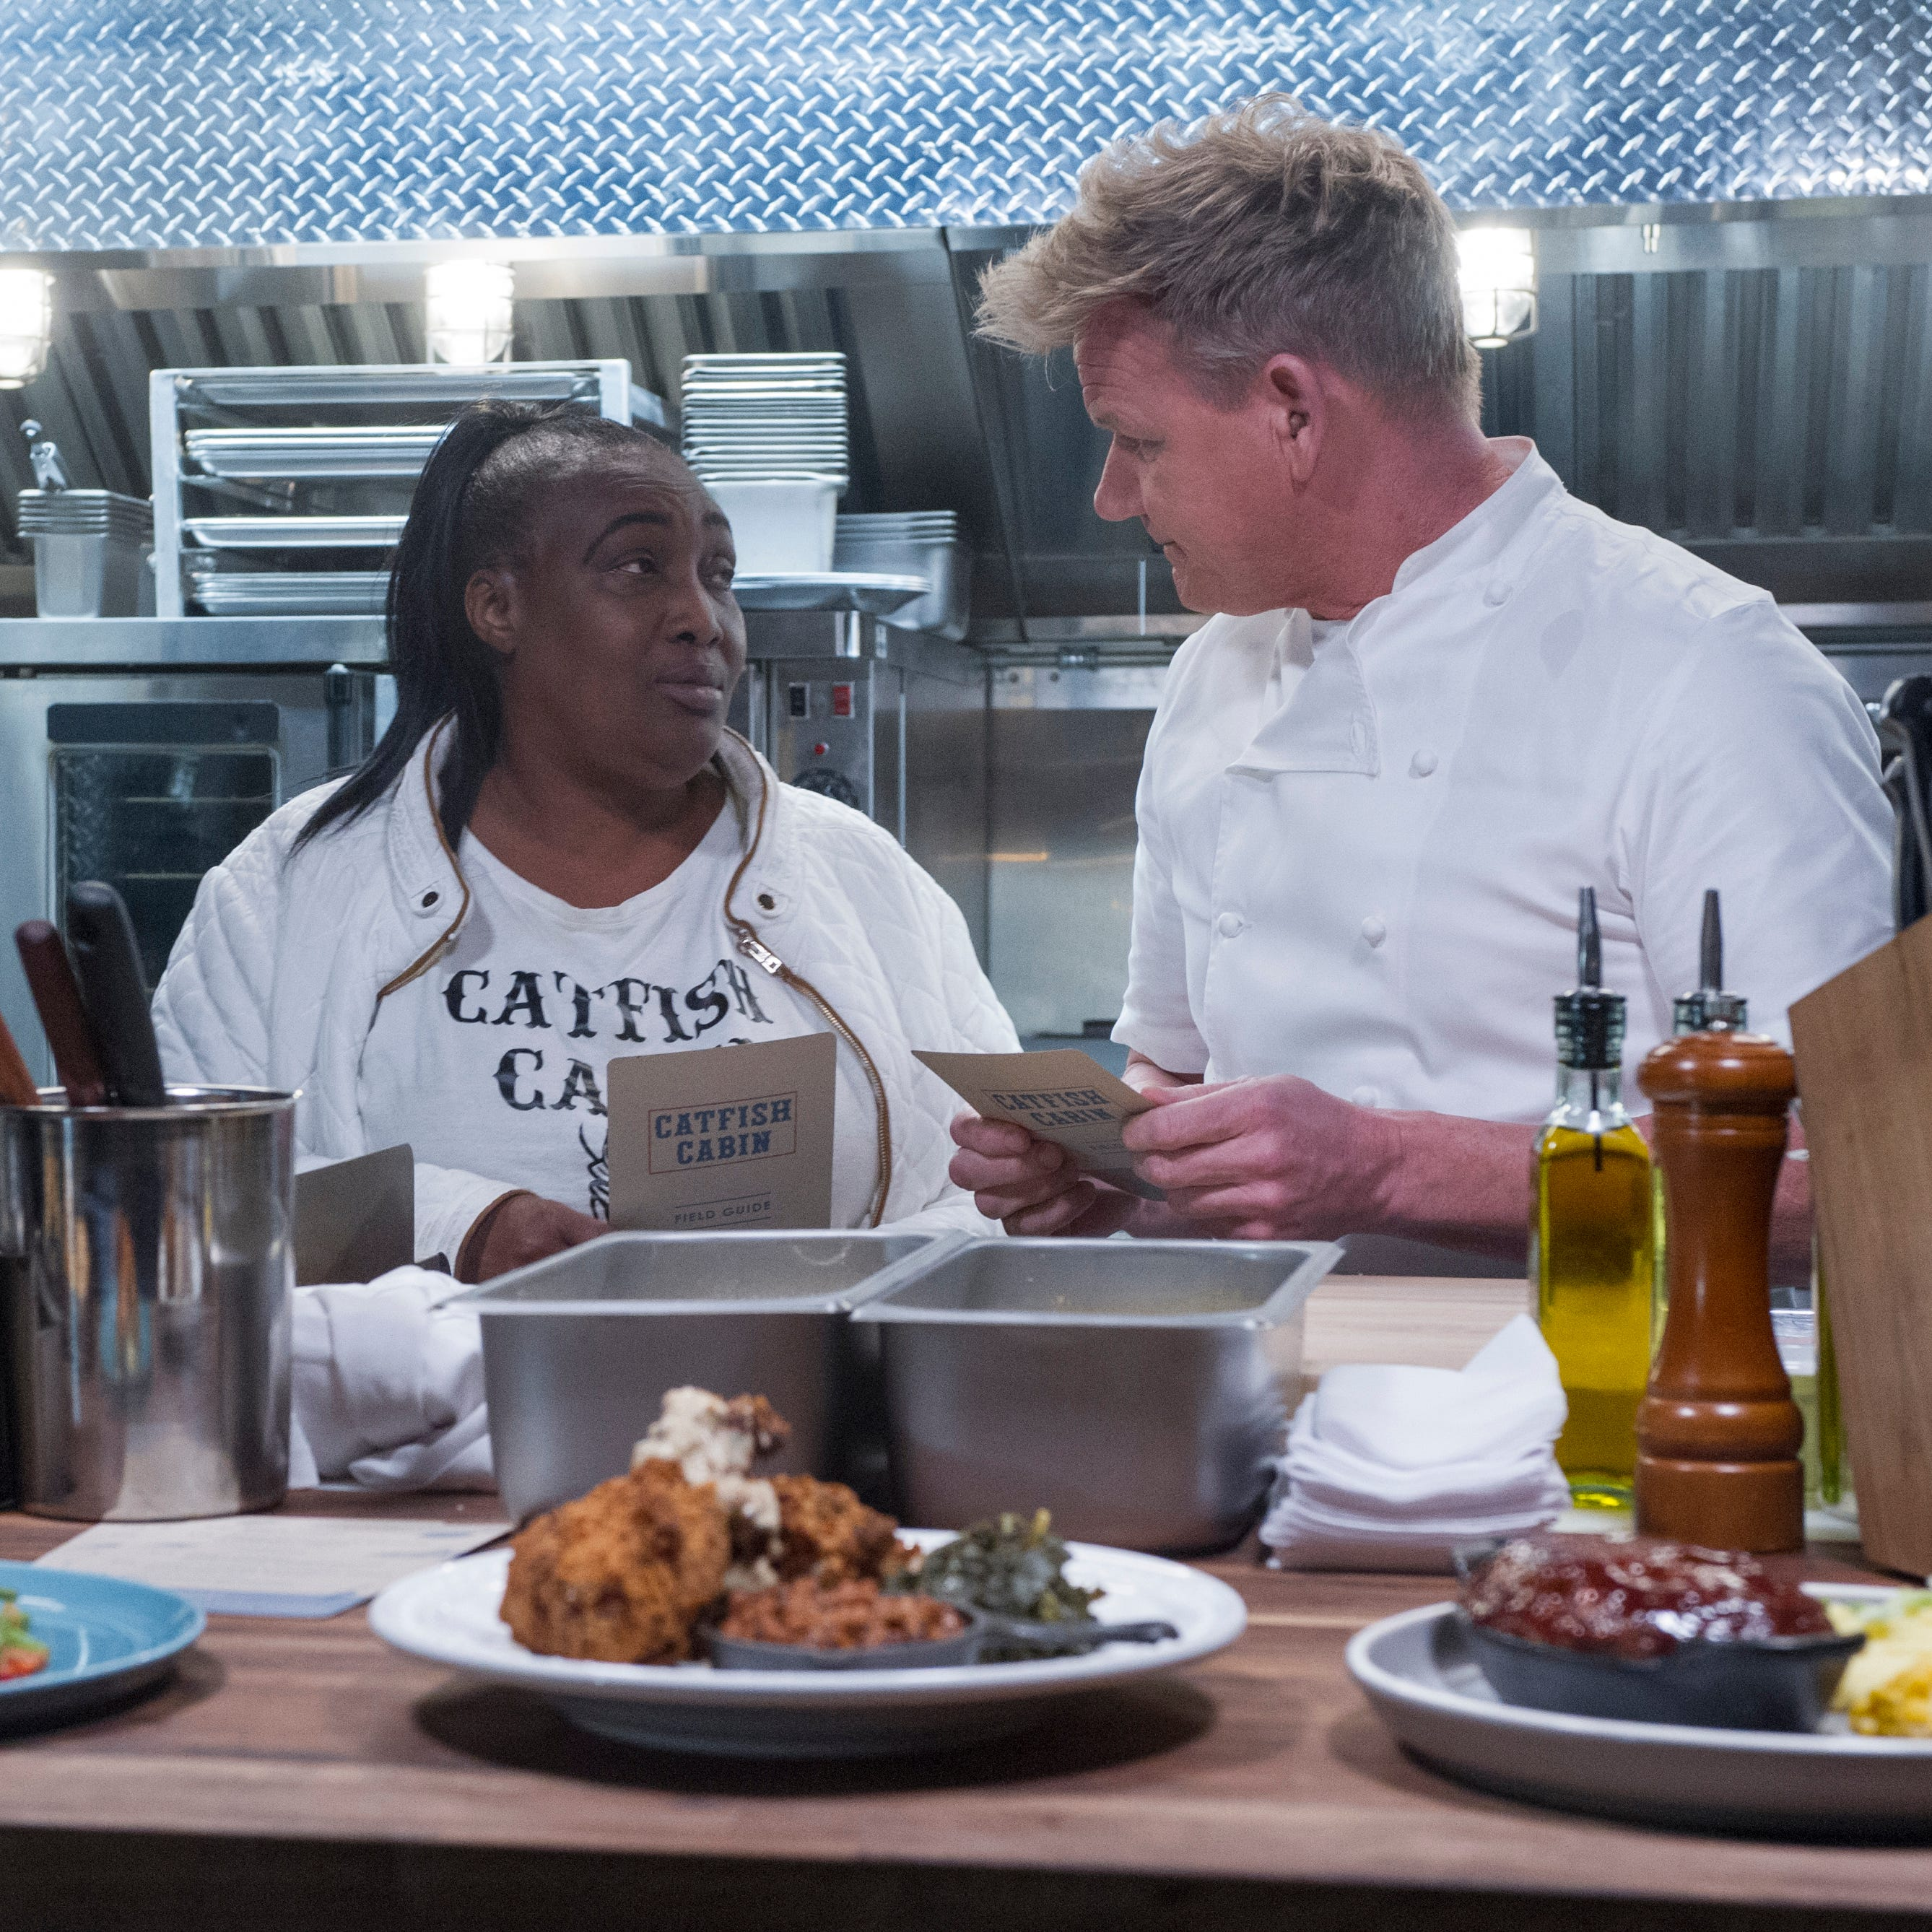 Chef Gordon Ramsay gives Catfish Cabin a makeover on his popular FOX TV show '24 Hours to Hell and Back'